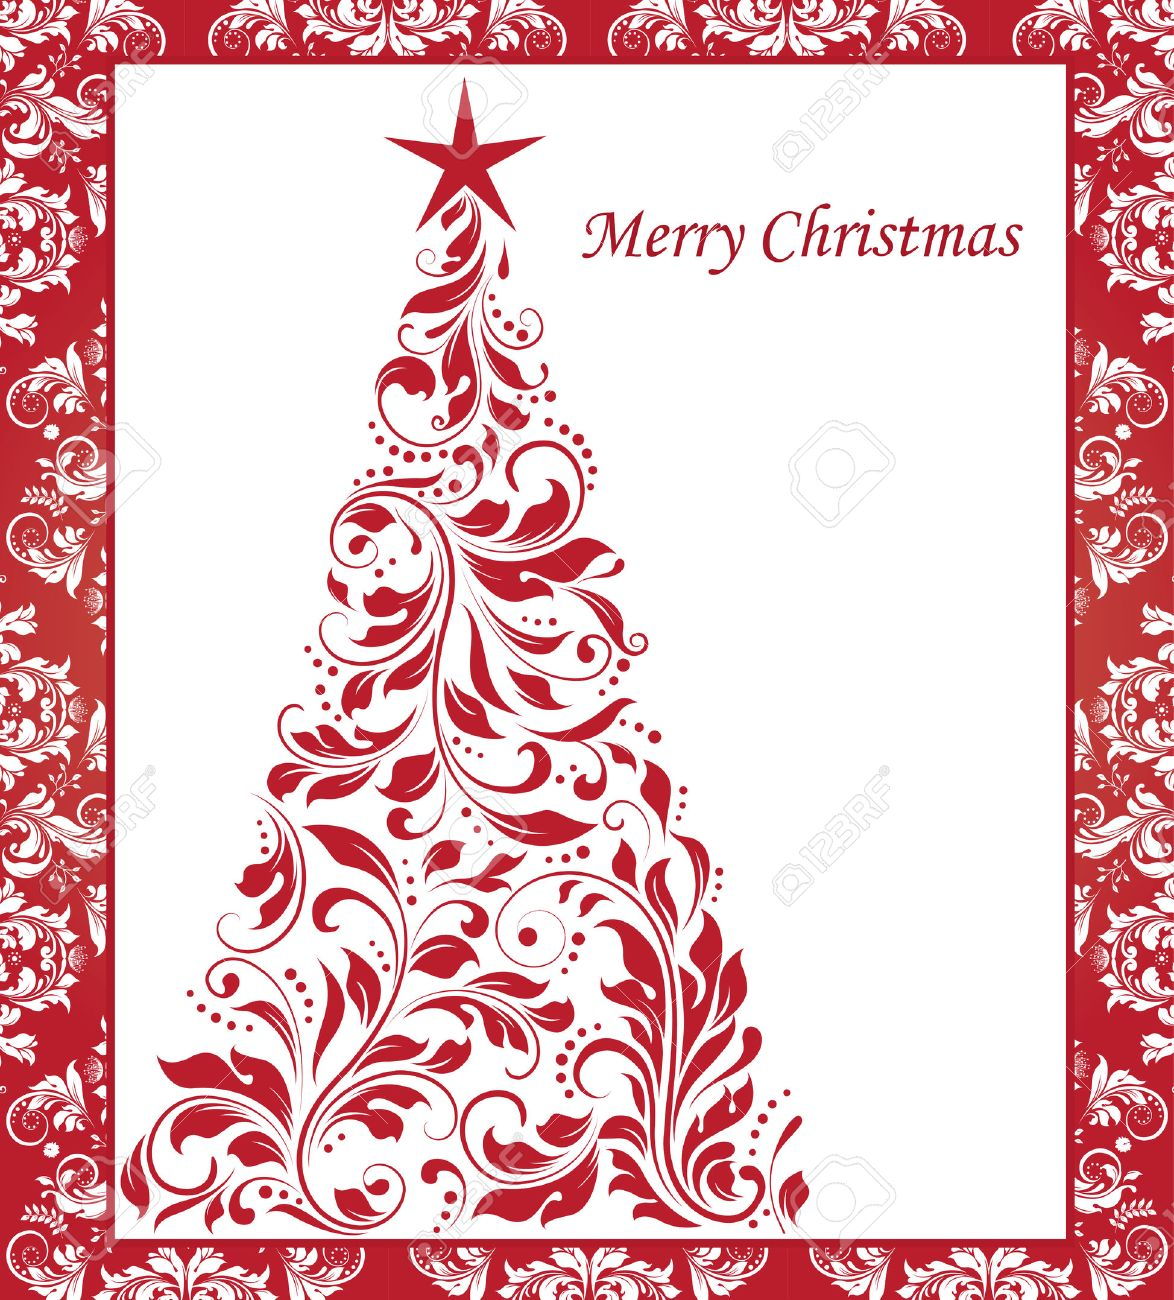 Vintage Christmas card with ornate elegant abstract floral design, red on white Christmas tree with border. Vector illustration. - 41693799